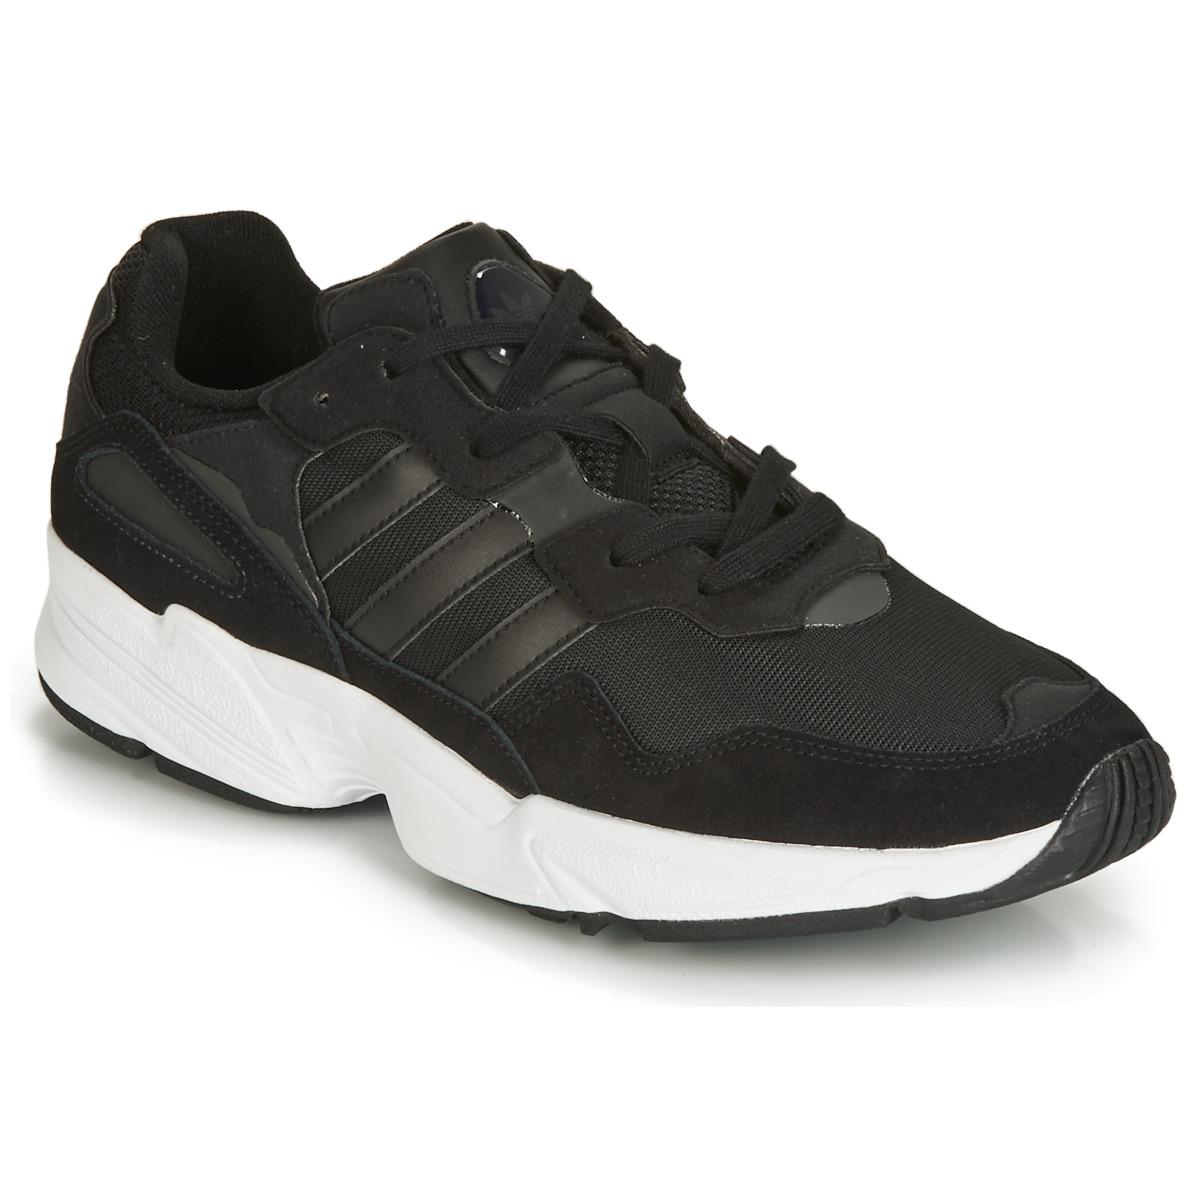 f7745461cdb7 adidas Falcon Women s Shoes (trainers) In Black in Black - Lyst